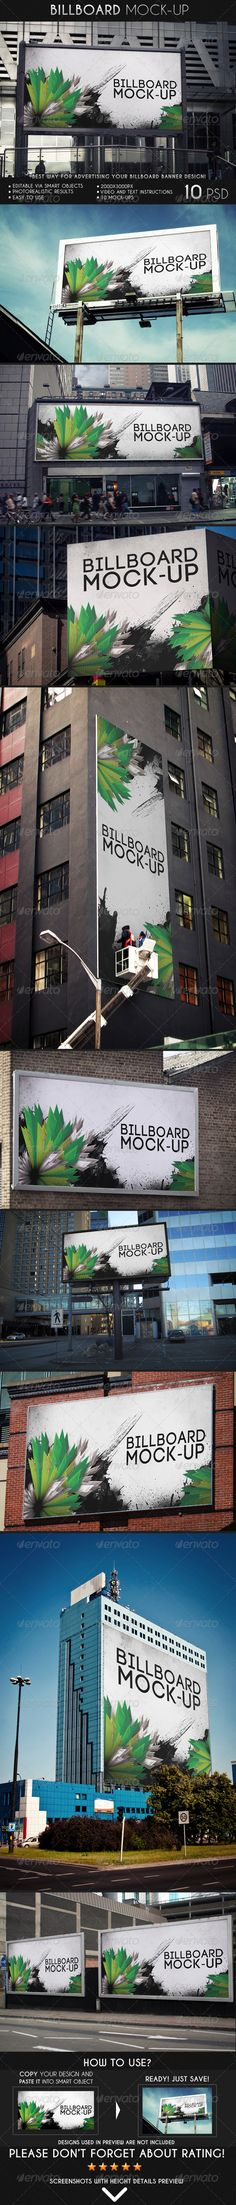 Billboard Mock-up ad advertising banner mock-up billboard business city ad company corporate display editable logo mock-up mockup outdoor photograph photorealistic professional sky Billboard Mockup, Billboard Design, Roll Up Design, Mockup Photoshop, Web Design, Graphic Design, Business Flyer Templates, Business Card Logo, Signage